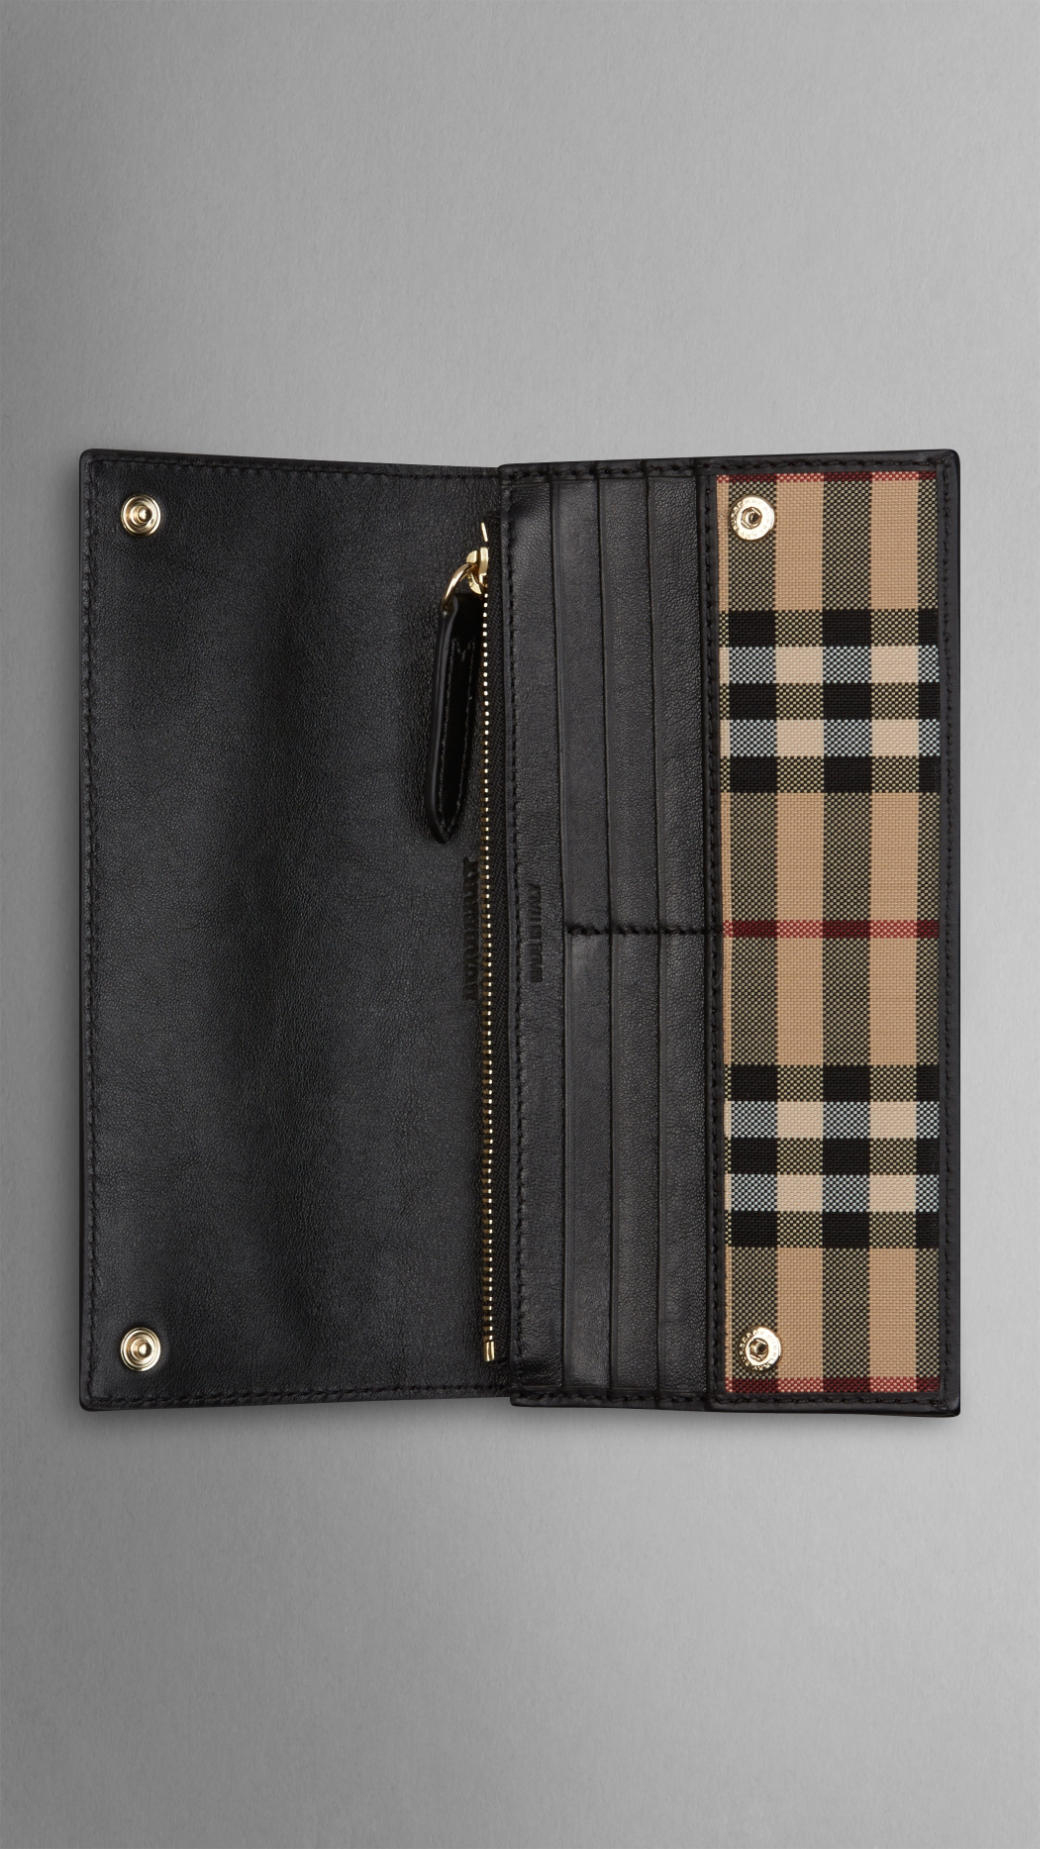 Lyst - Burberry Horseferry Check And Leather Continental Wallet in Black for Men